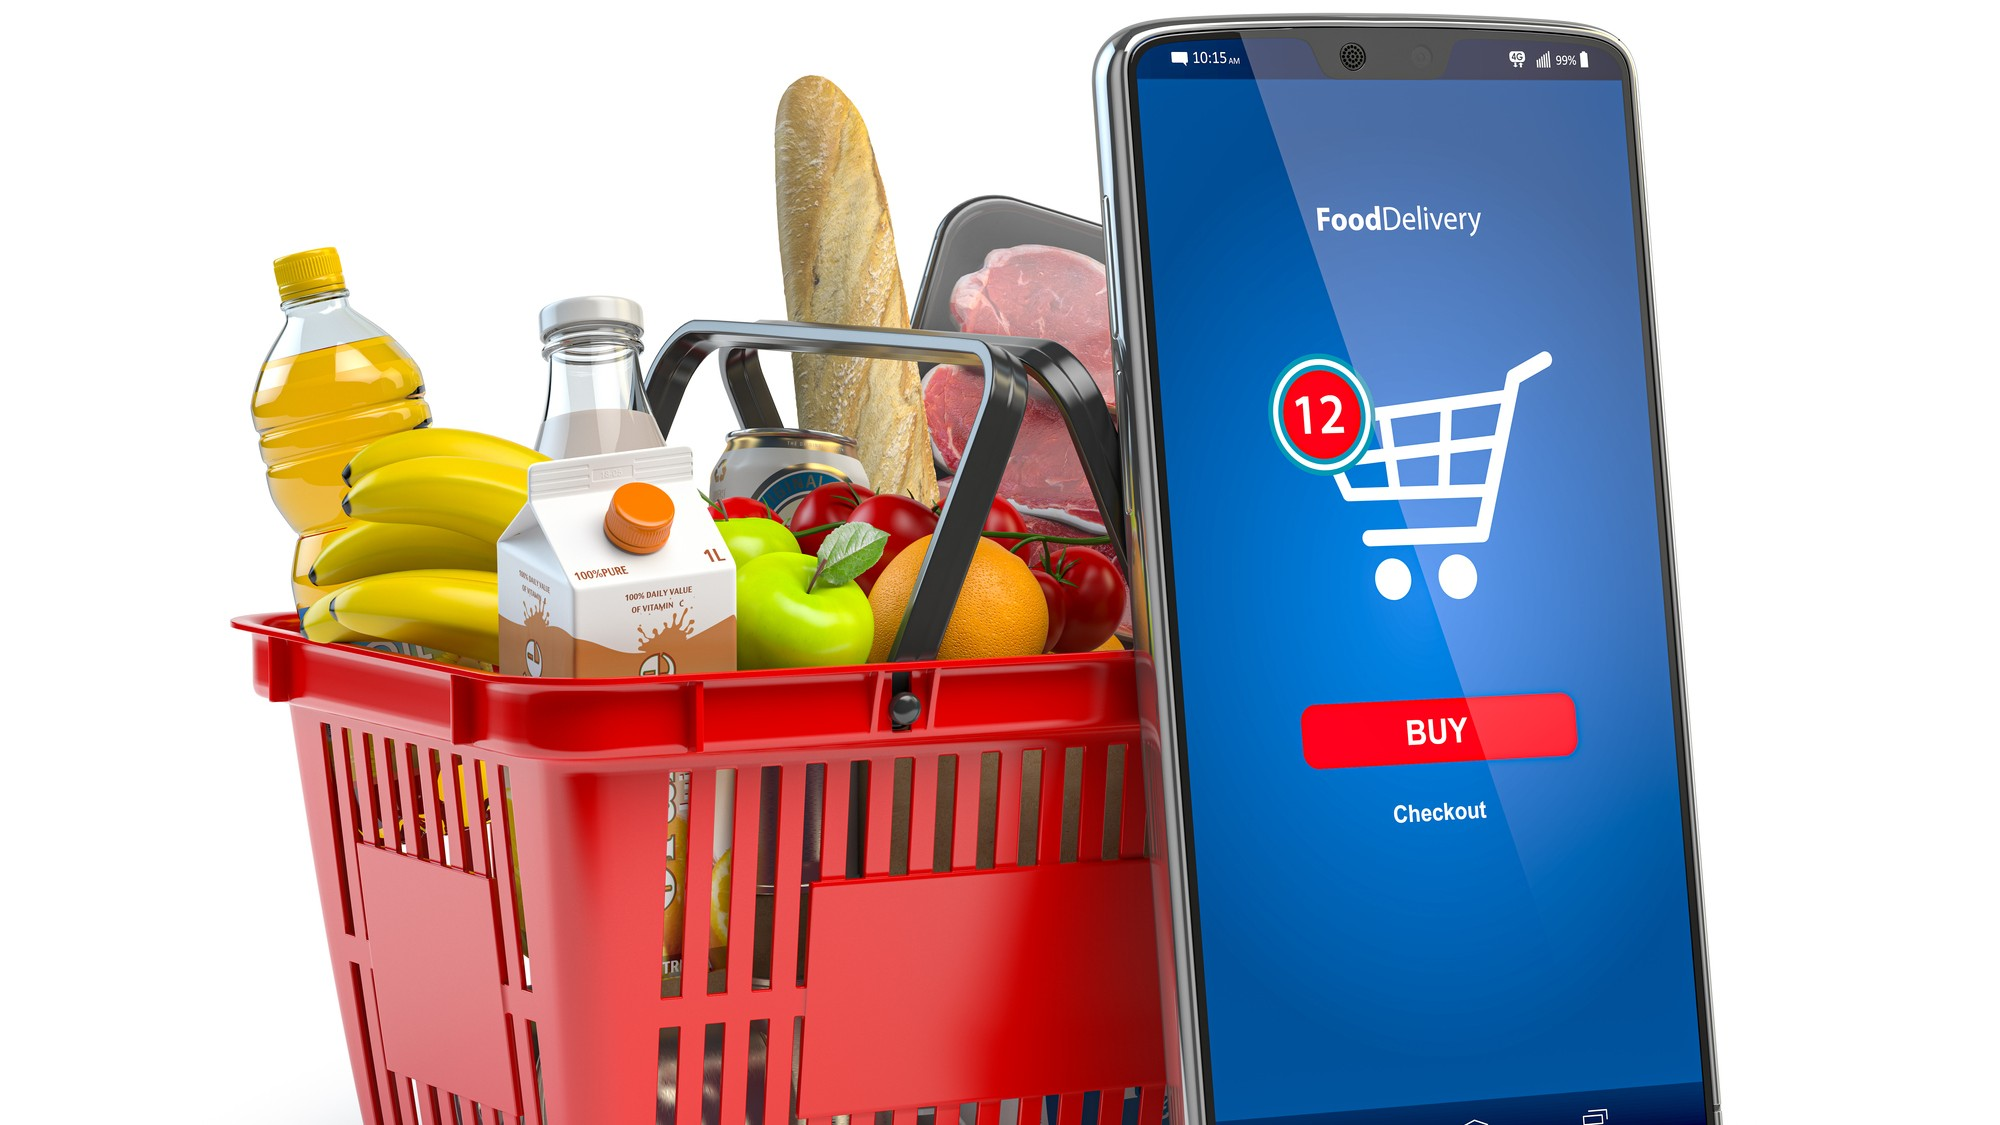 basket of grocery items with smart phone ordering system